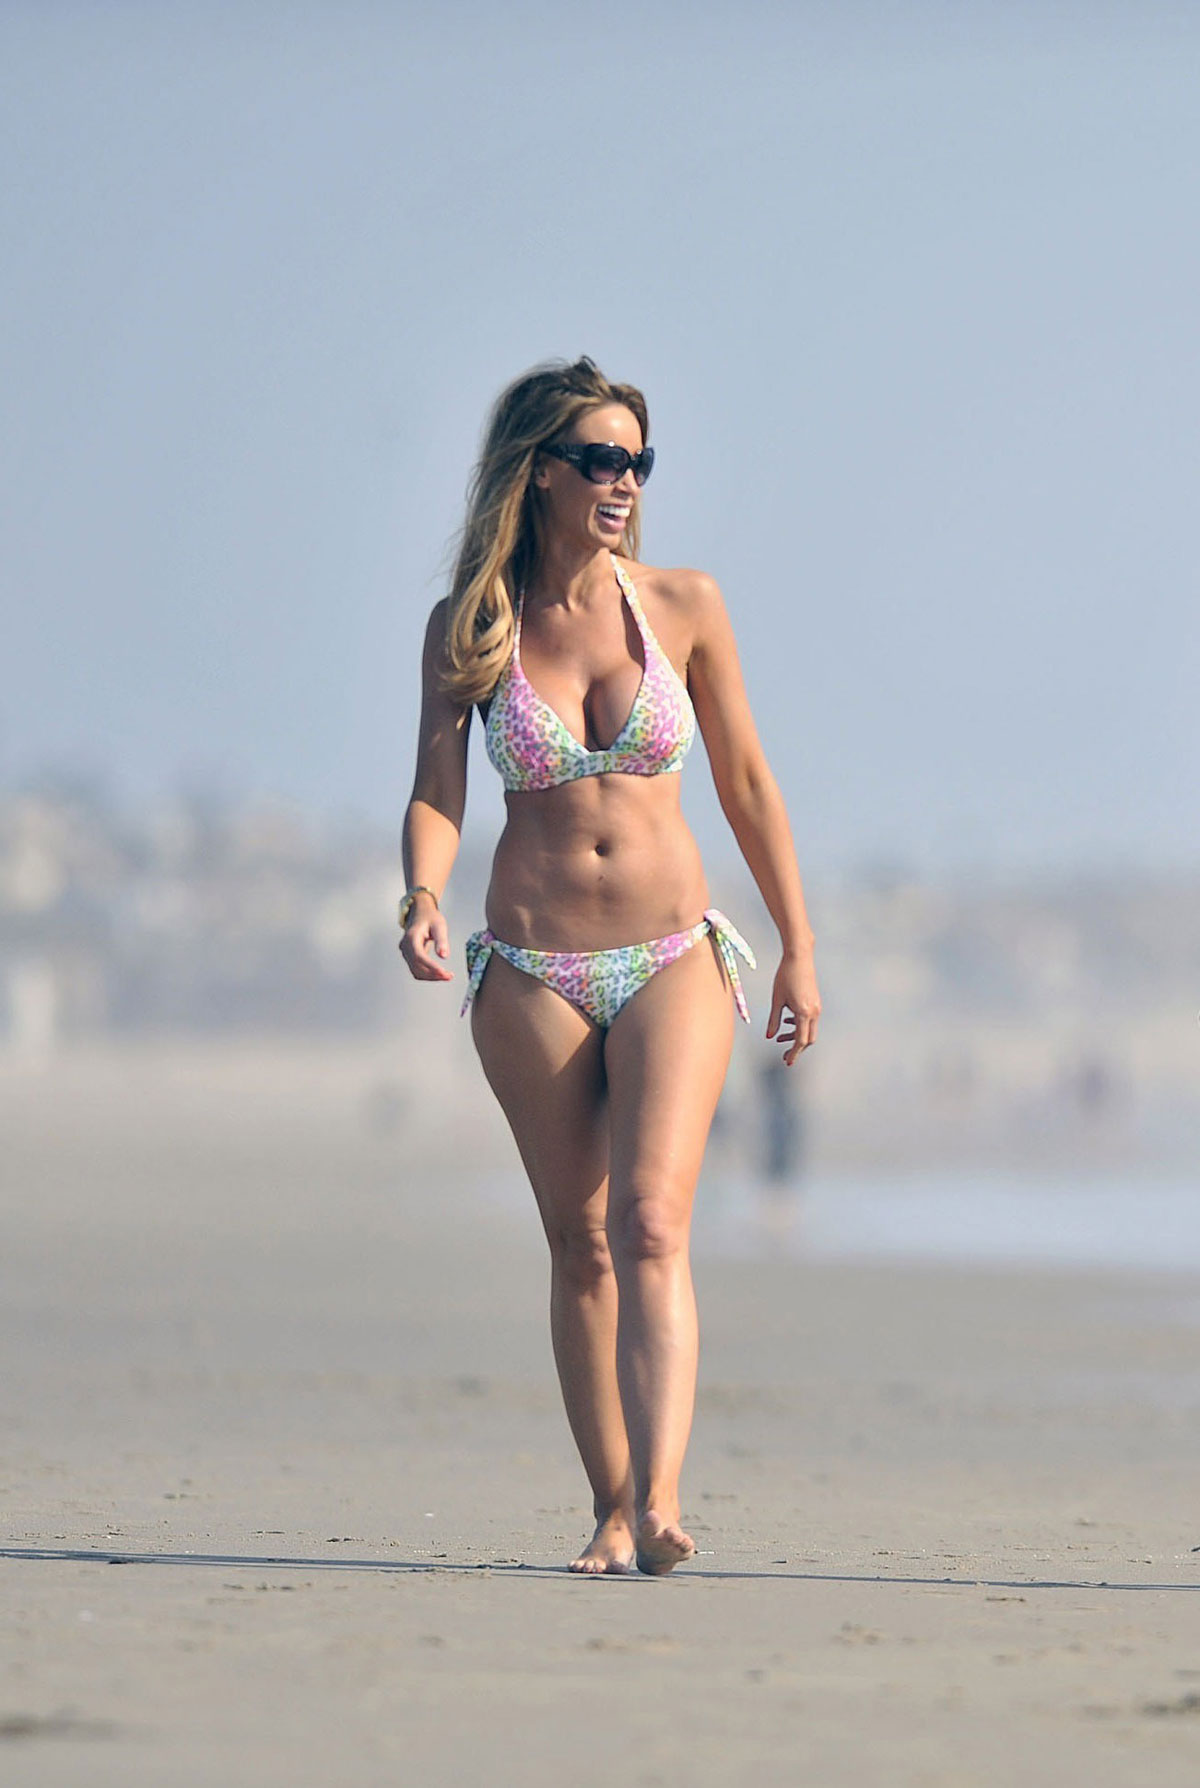 With her slim body and Regular blond hairtype without bra (cup size 34D) on the beach in bikini